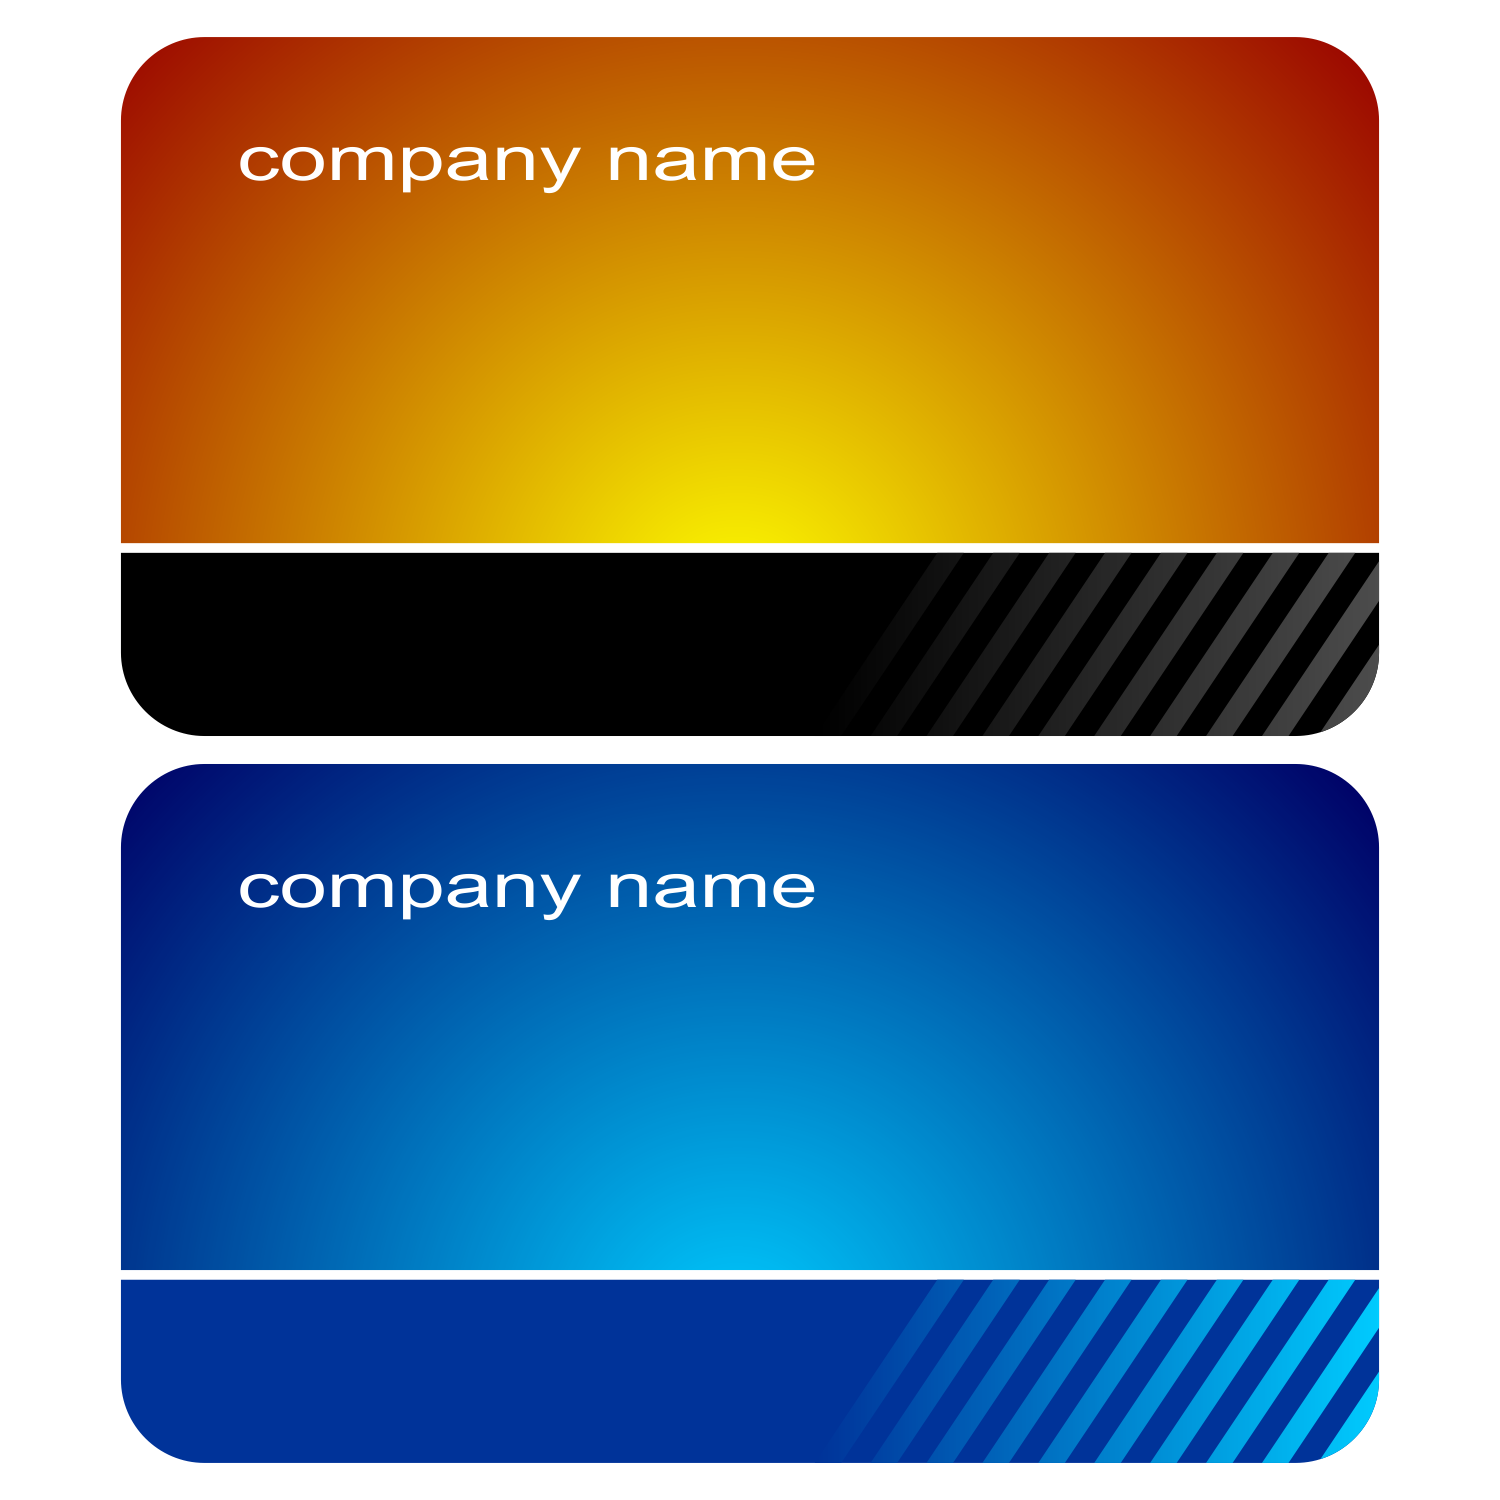 PNG For Business Use Transparent For Business Use.PNG Images. | PlusPNG